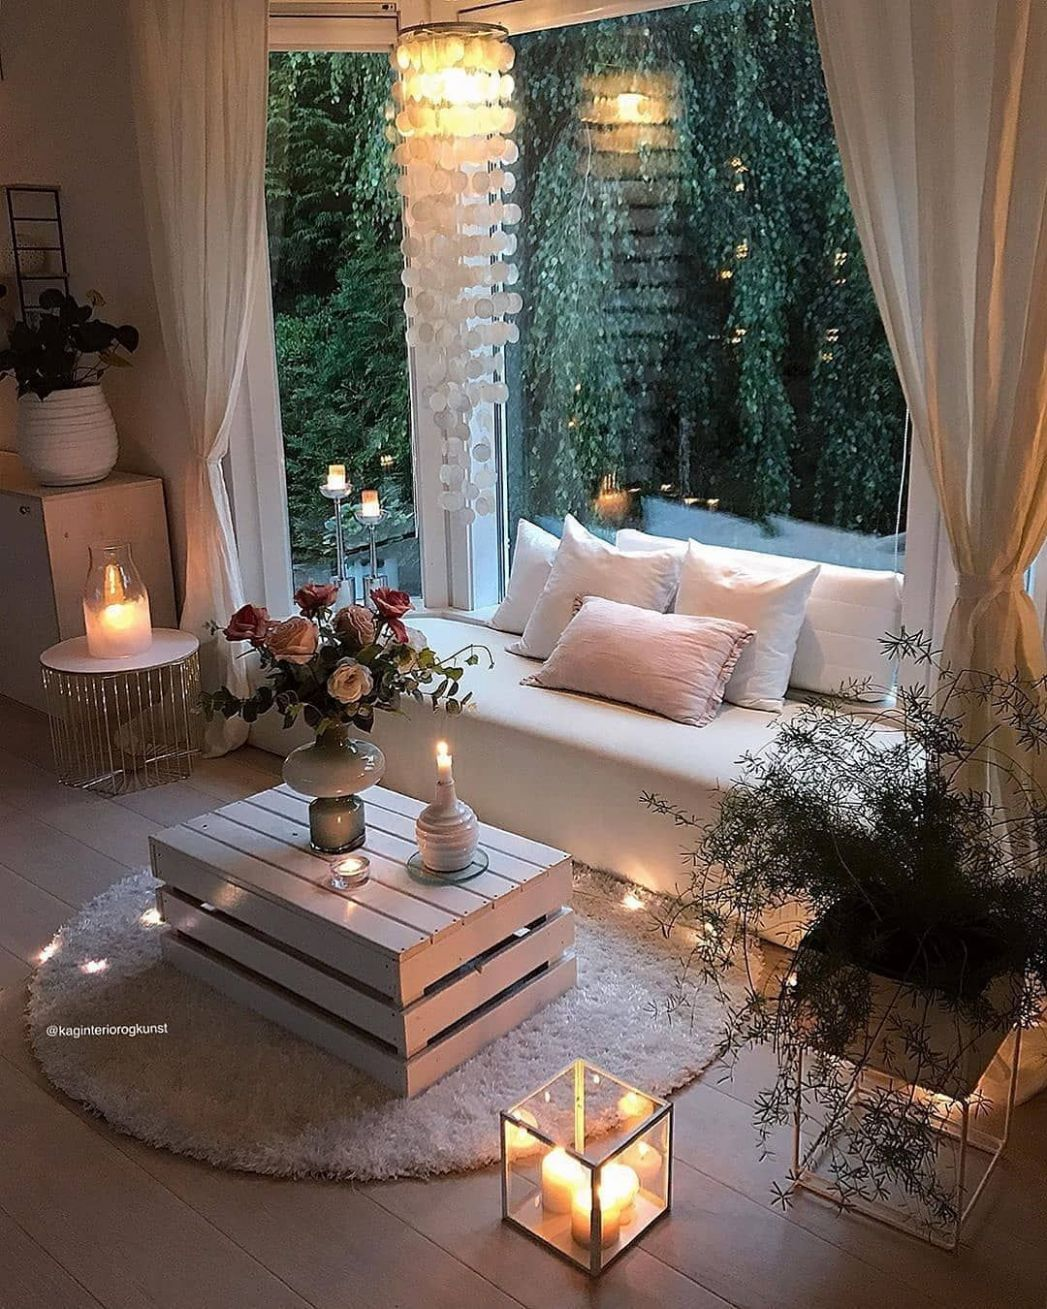 "Interior Design & Home Decor on Instagram: ""This beautiful home ..."